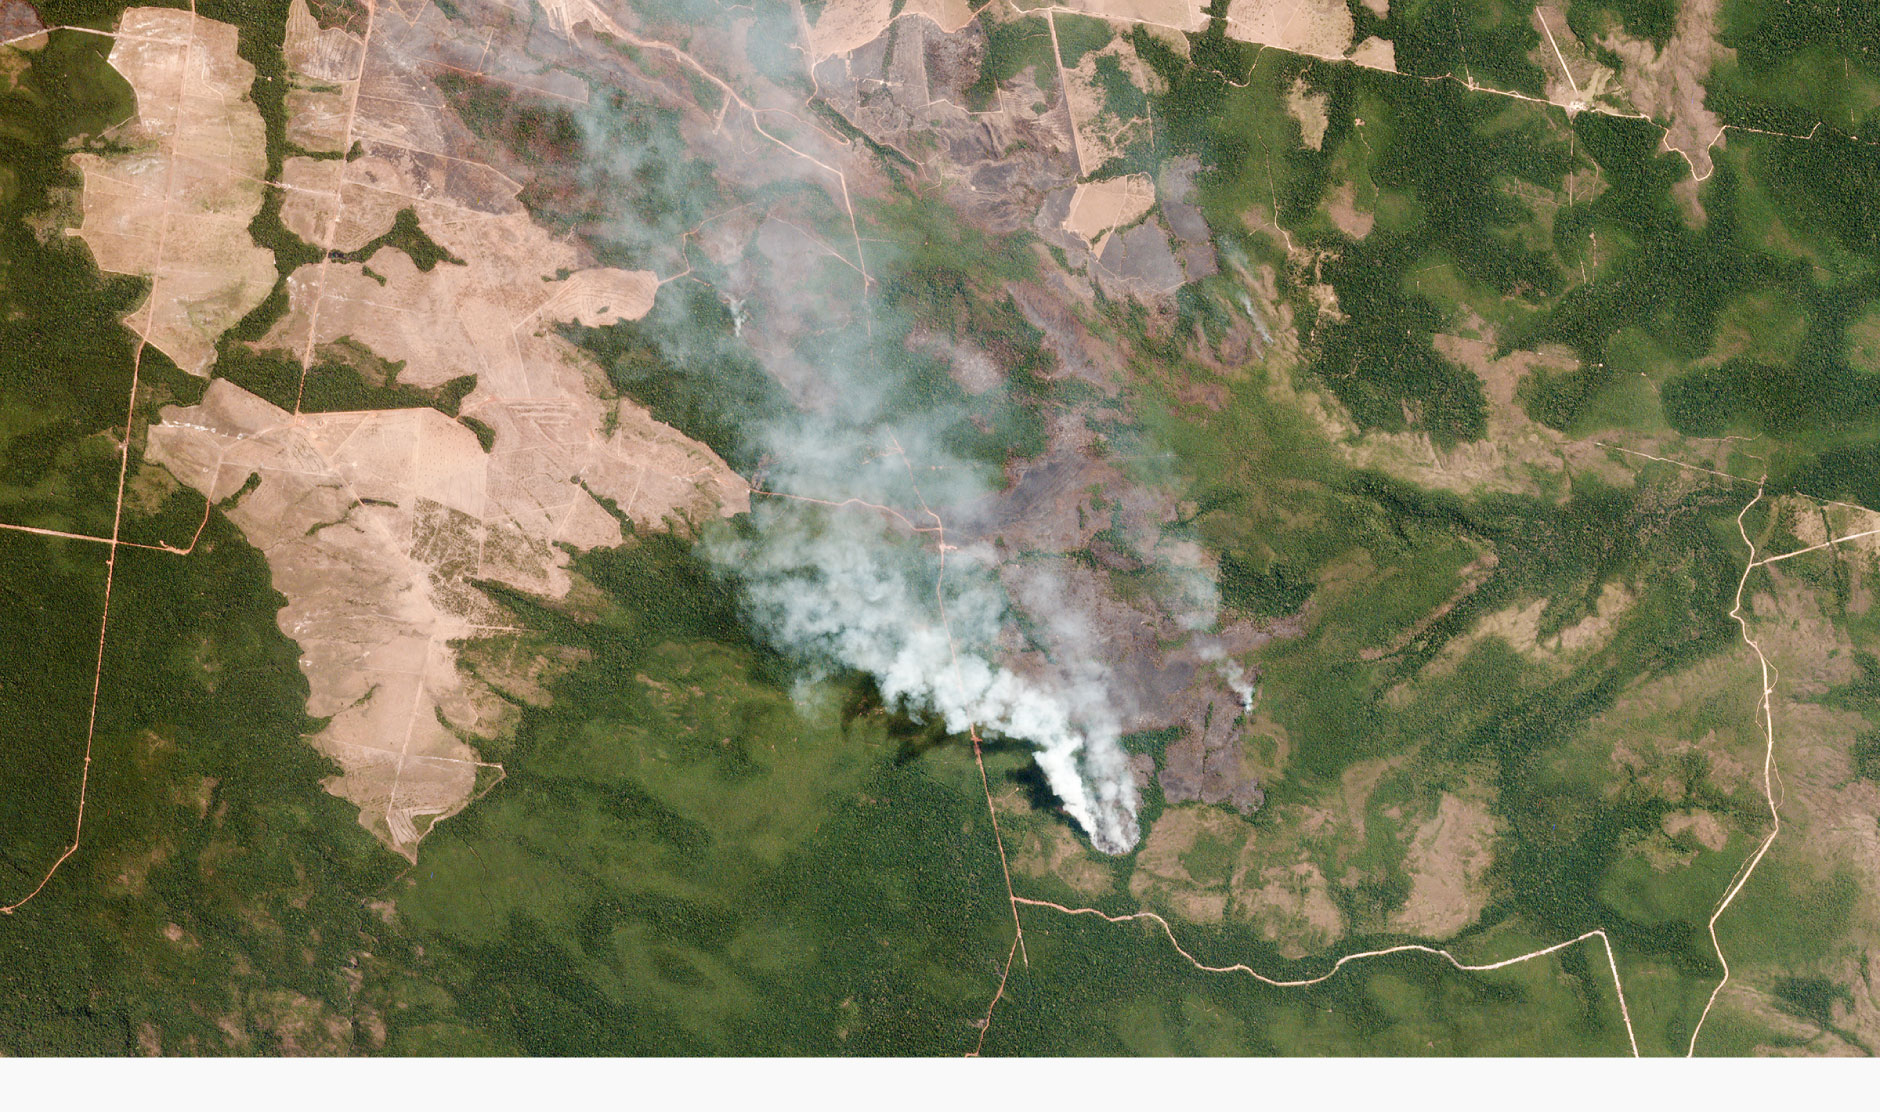 NASA photo of the Amazon forest fires from space